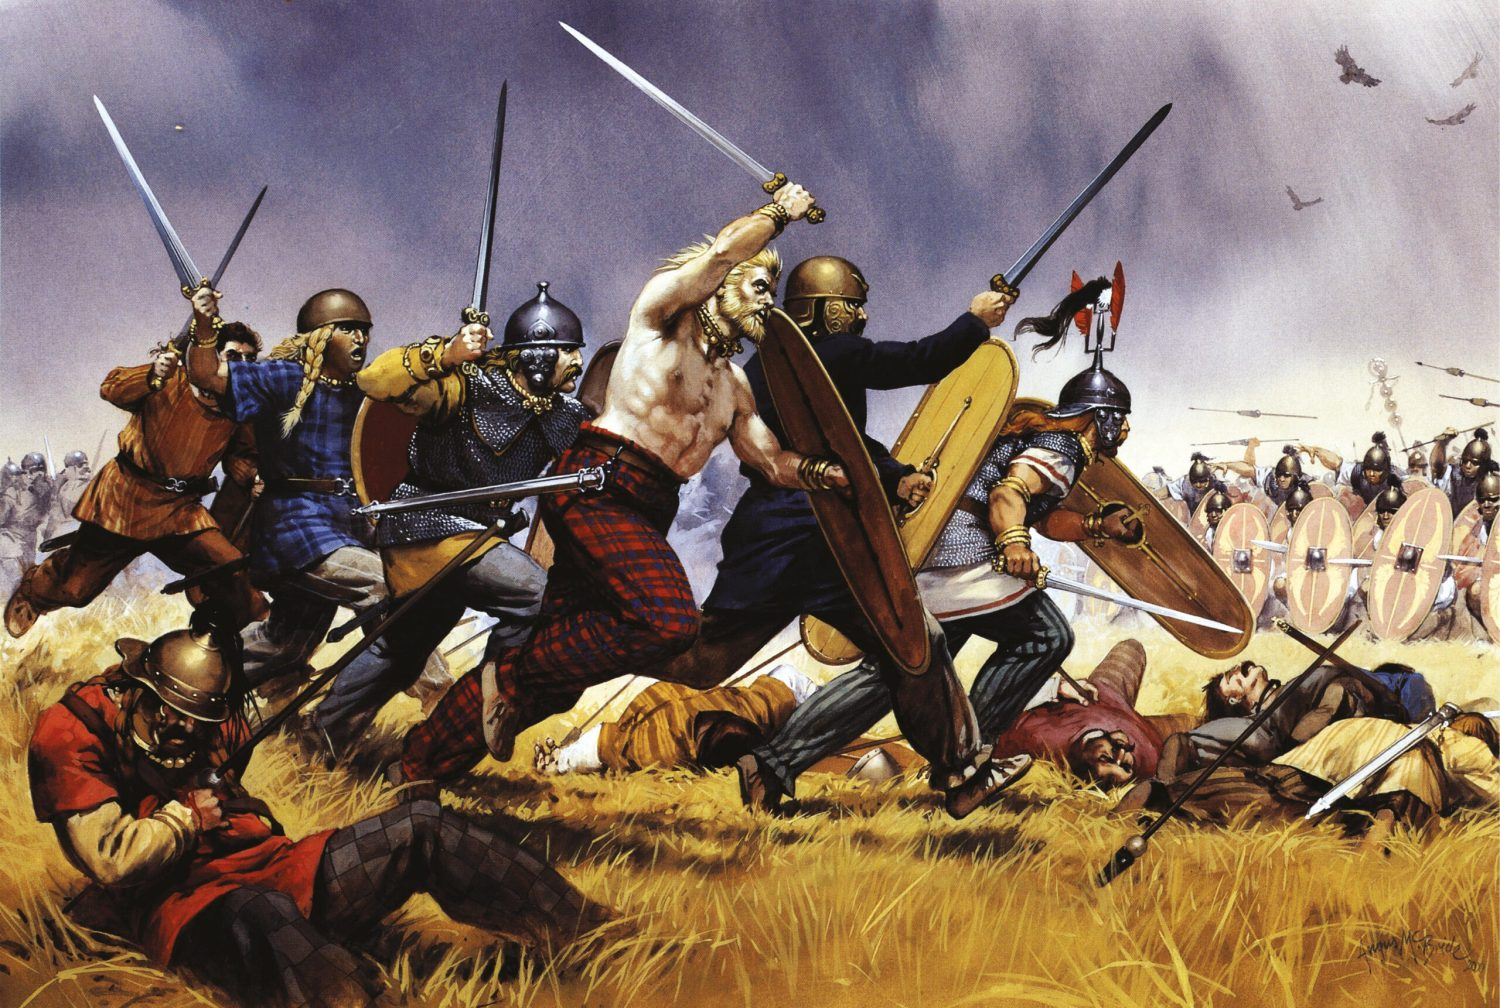 left The Gauls were among the most formidable warriors in Europe. The Romans had been fighting wars with them for well over a century by the time of Caesar's conquest of Transalpine Gaul.